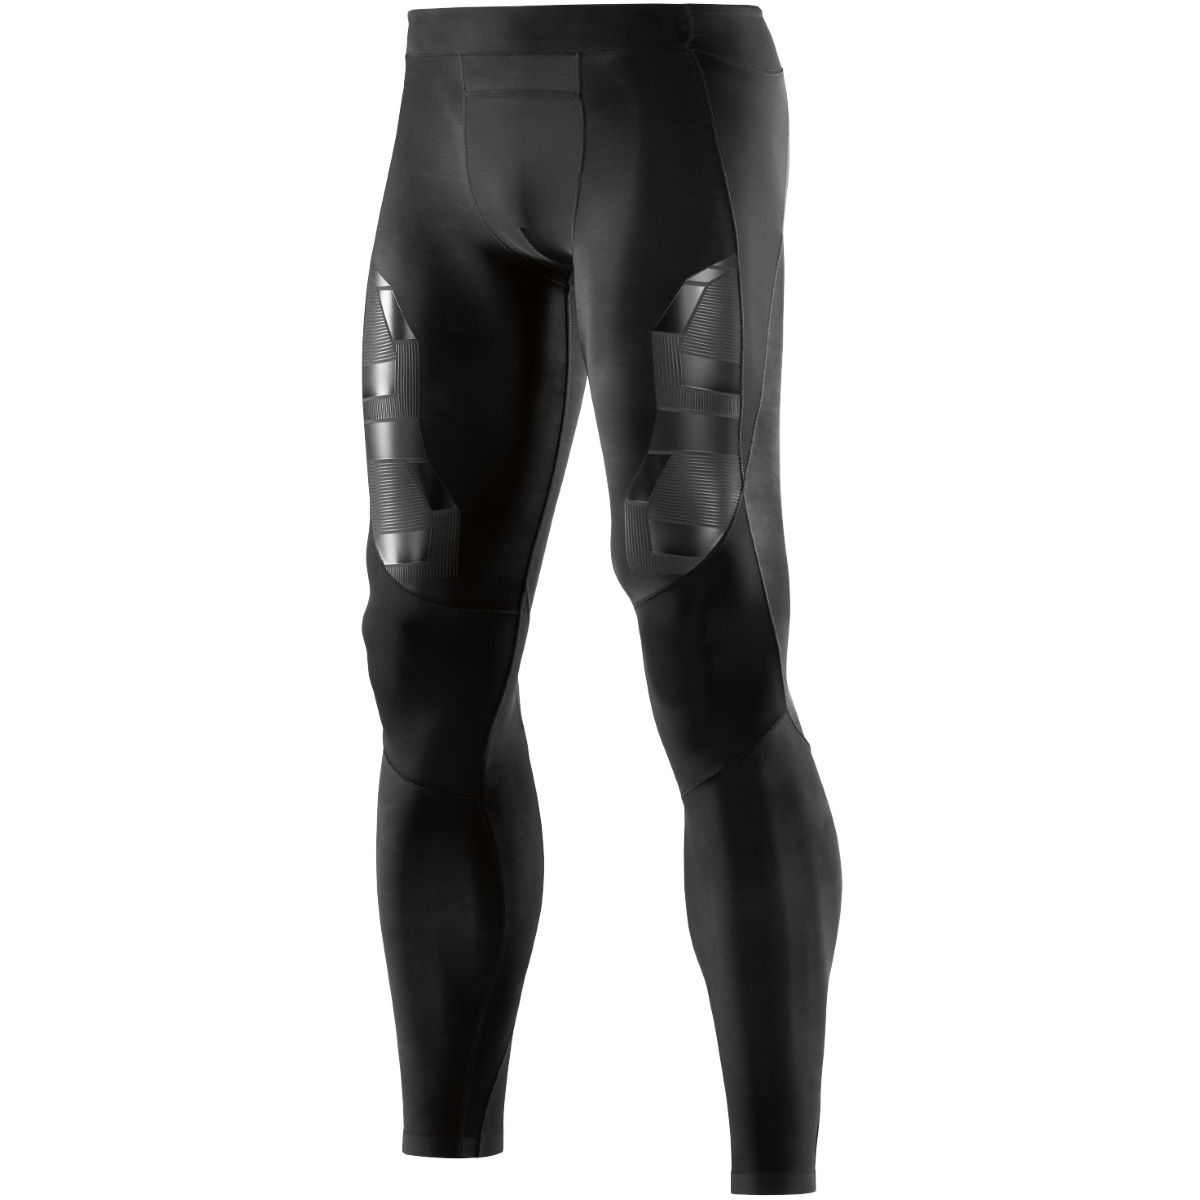 Collant long SKINS A400 - XS Noir Sous-vêtements compression